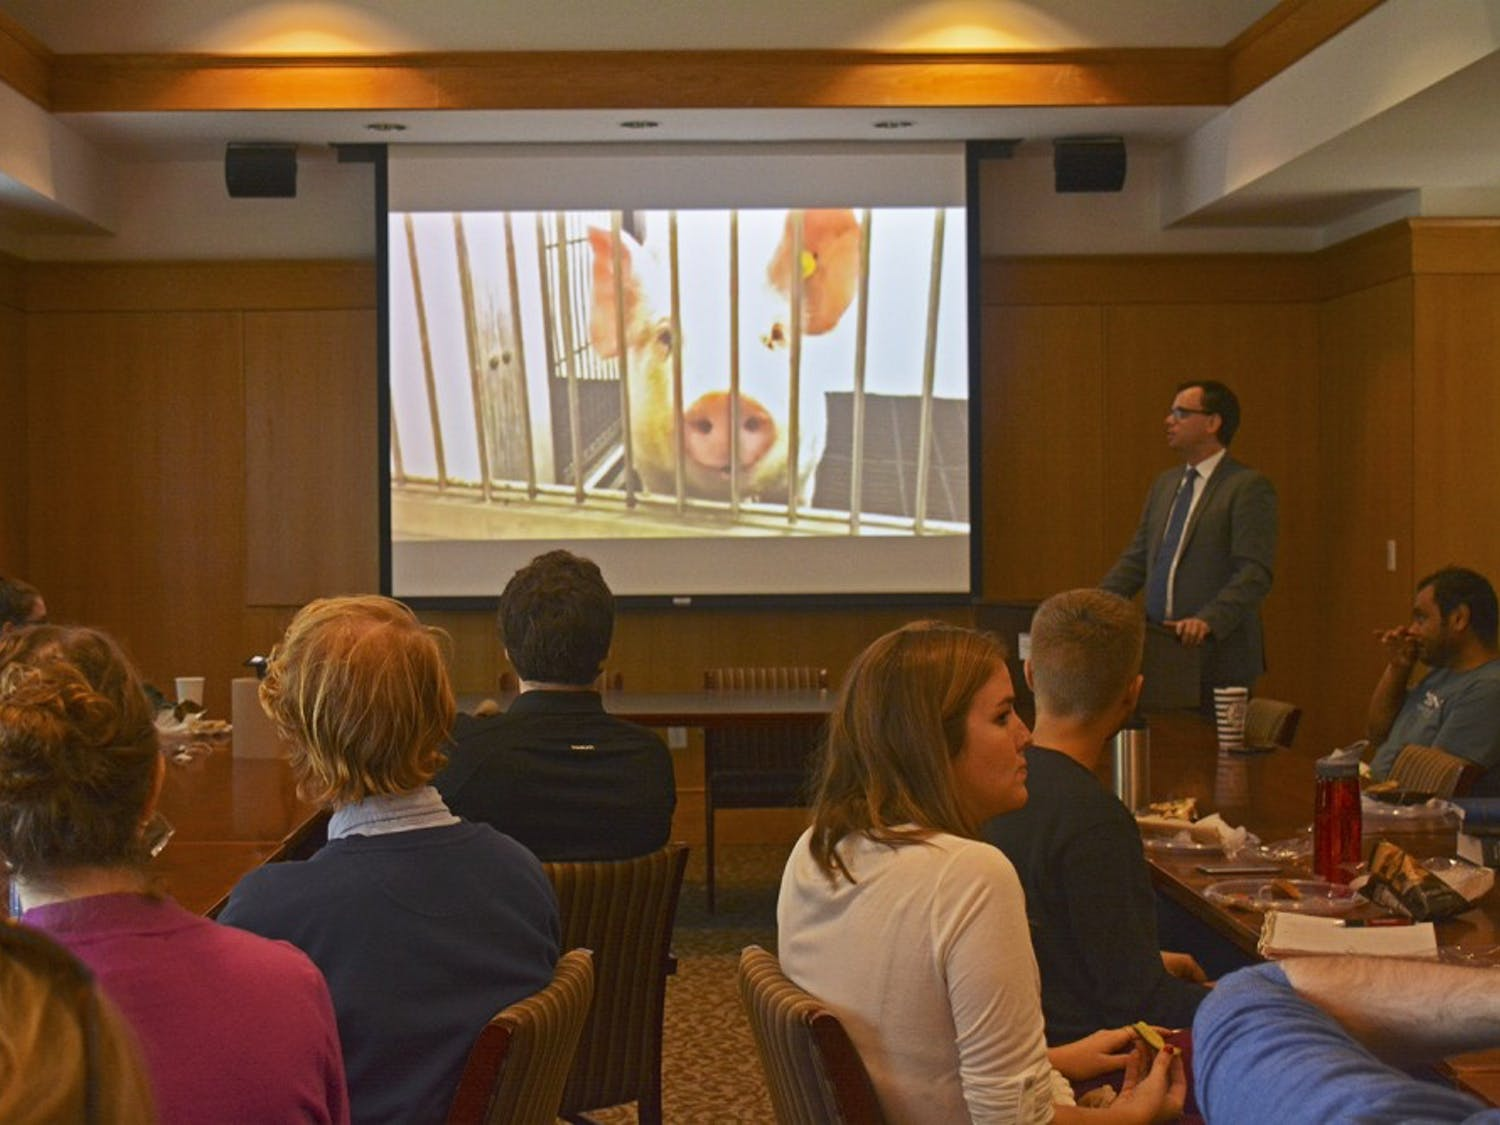 Ryan Merkley, Director of Research Advocacy at the Physician's Committee for Responsible Medicine, speaks at Saving Animal and Human Lives